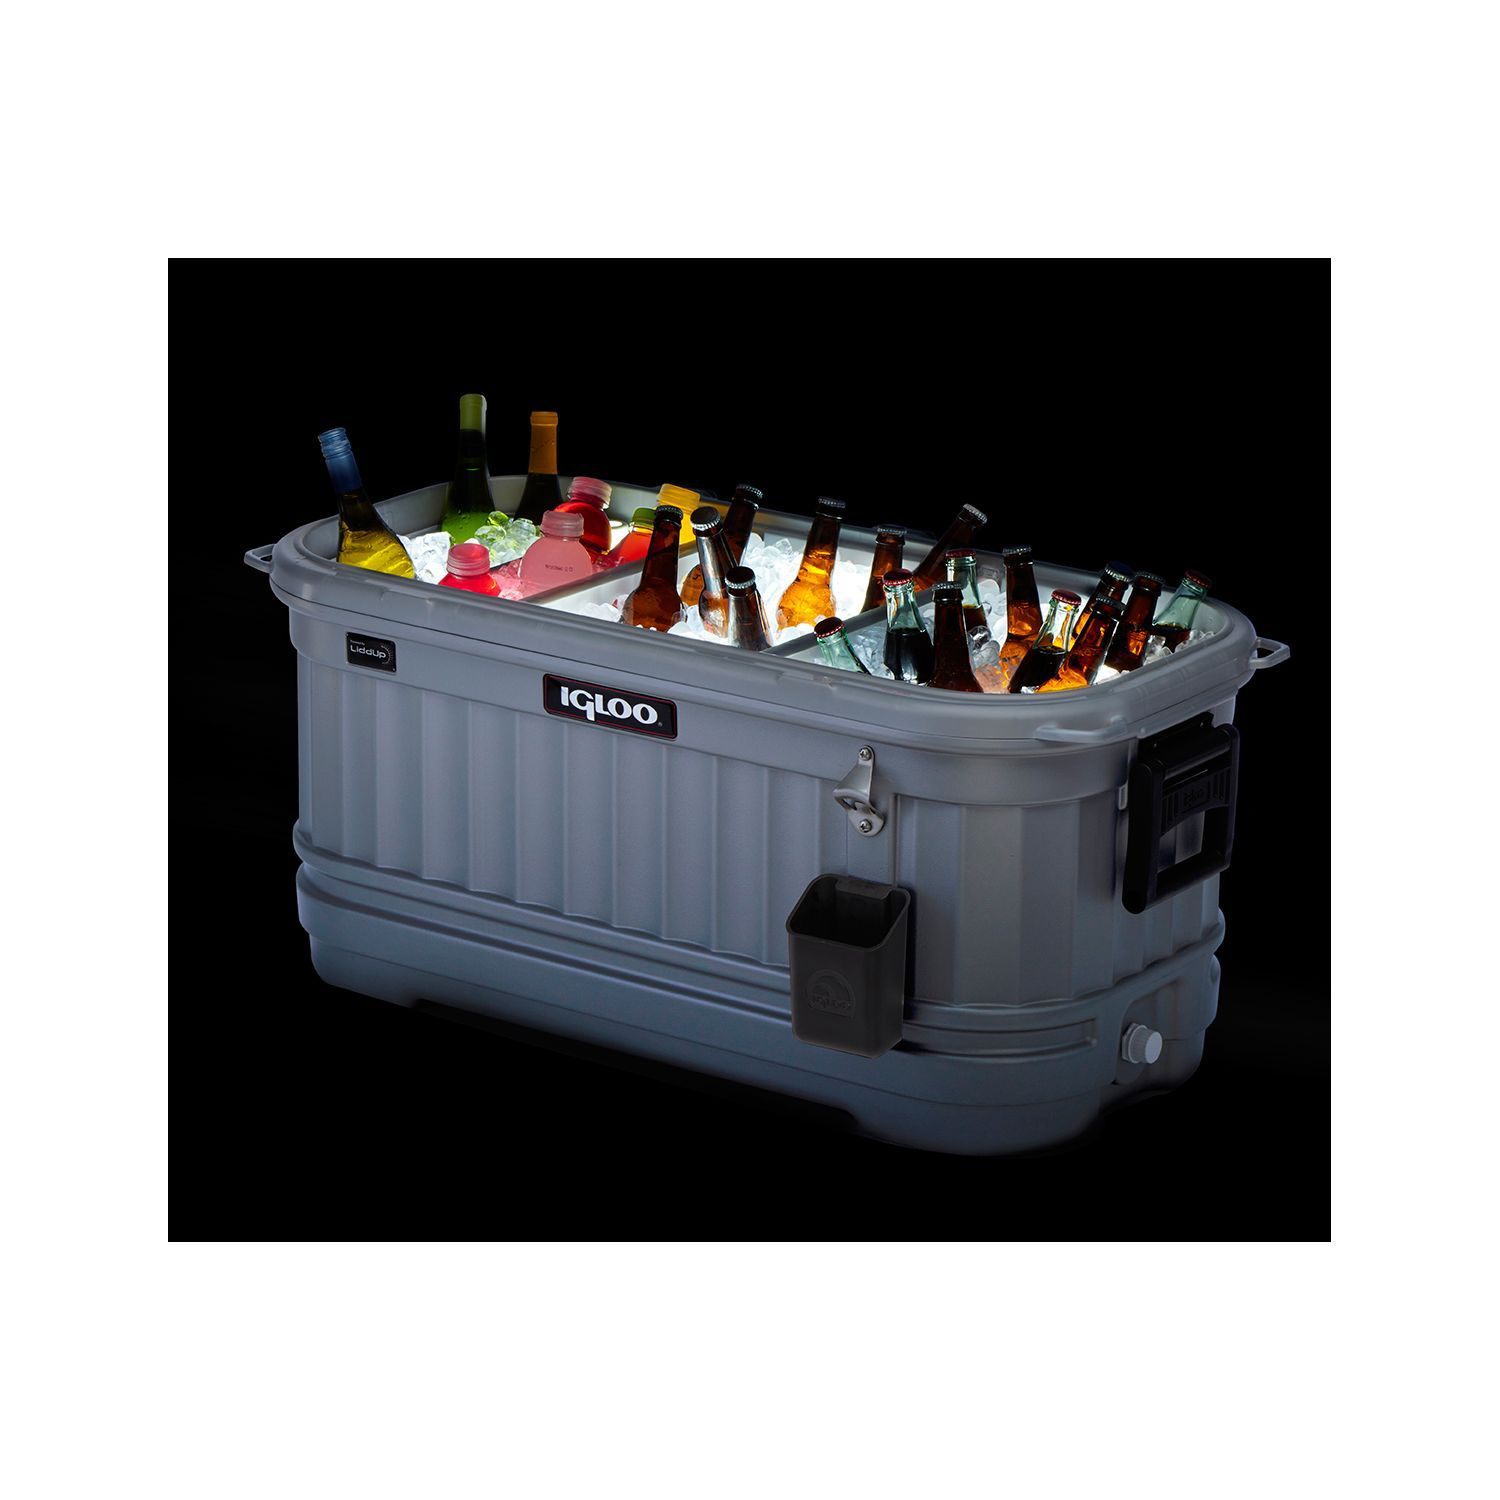 Inflatable Coolers. Showing 40 of 44 results that match your query. Search Product Result. Product - Summer Party Inflatable Buffet Cooler, 52 x 28 in, 1 ct. Product Image. Price Product - 26